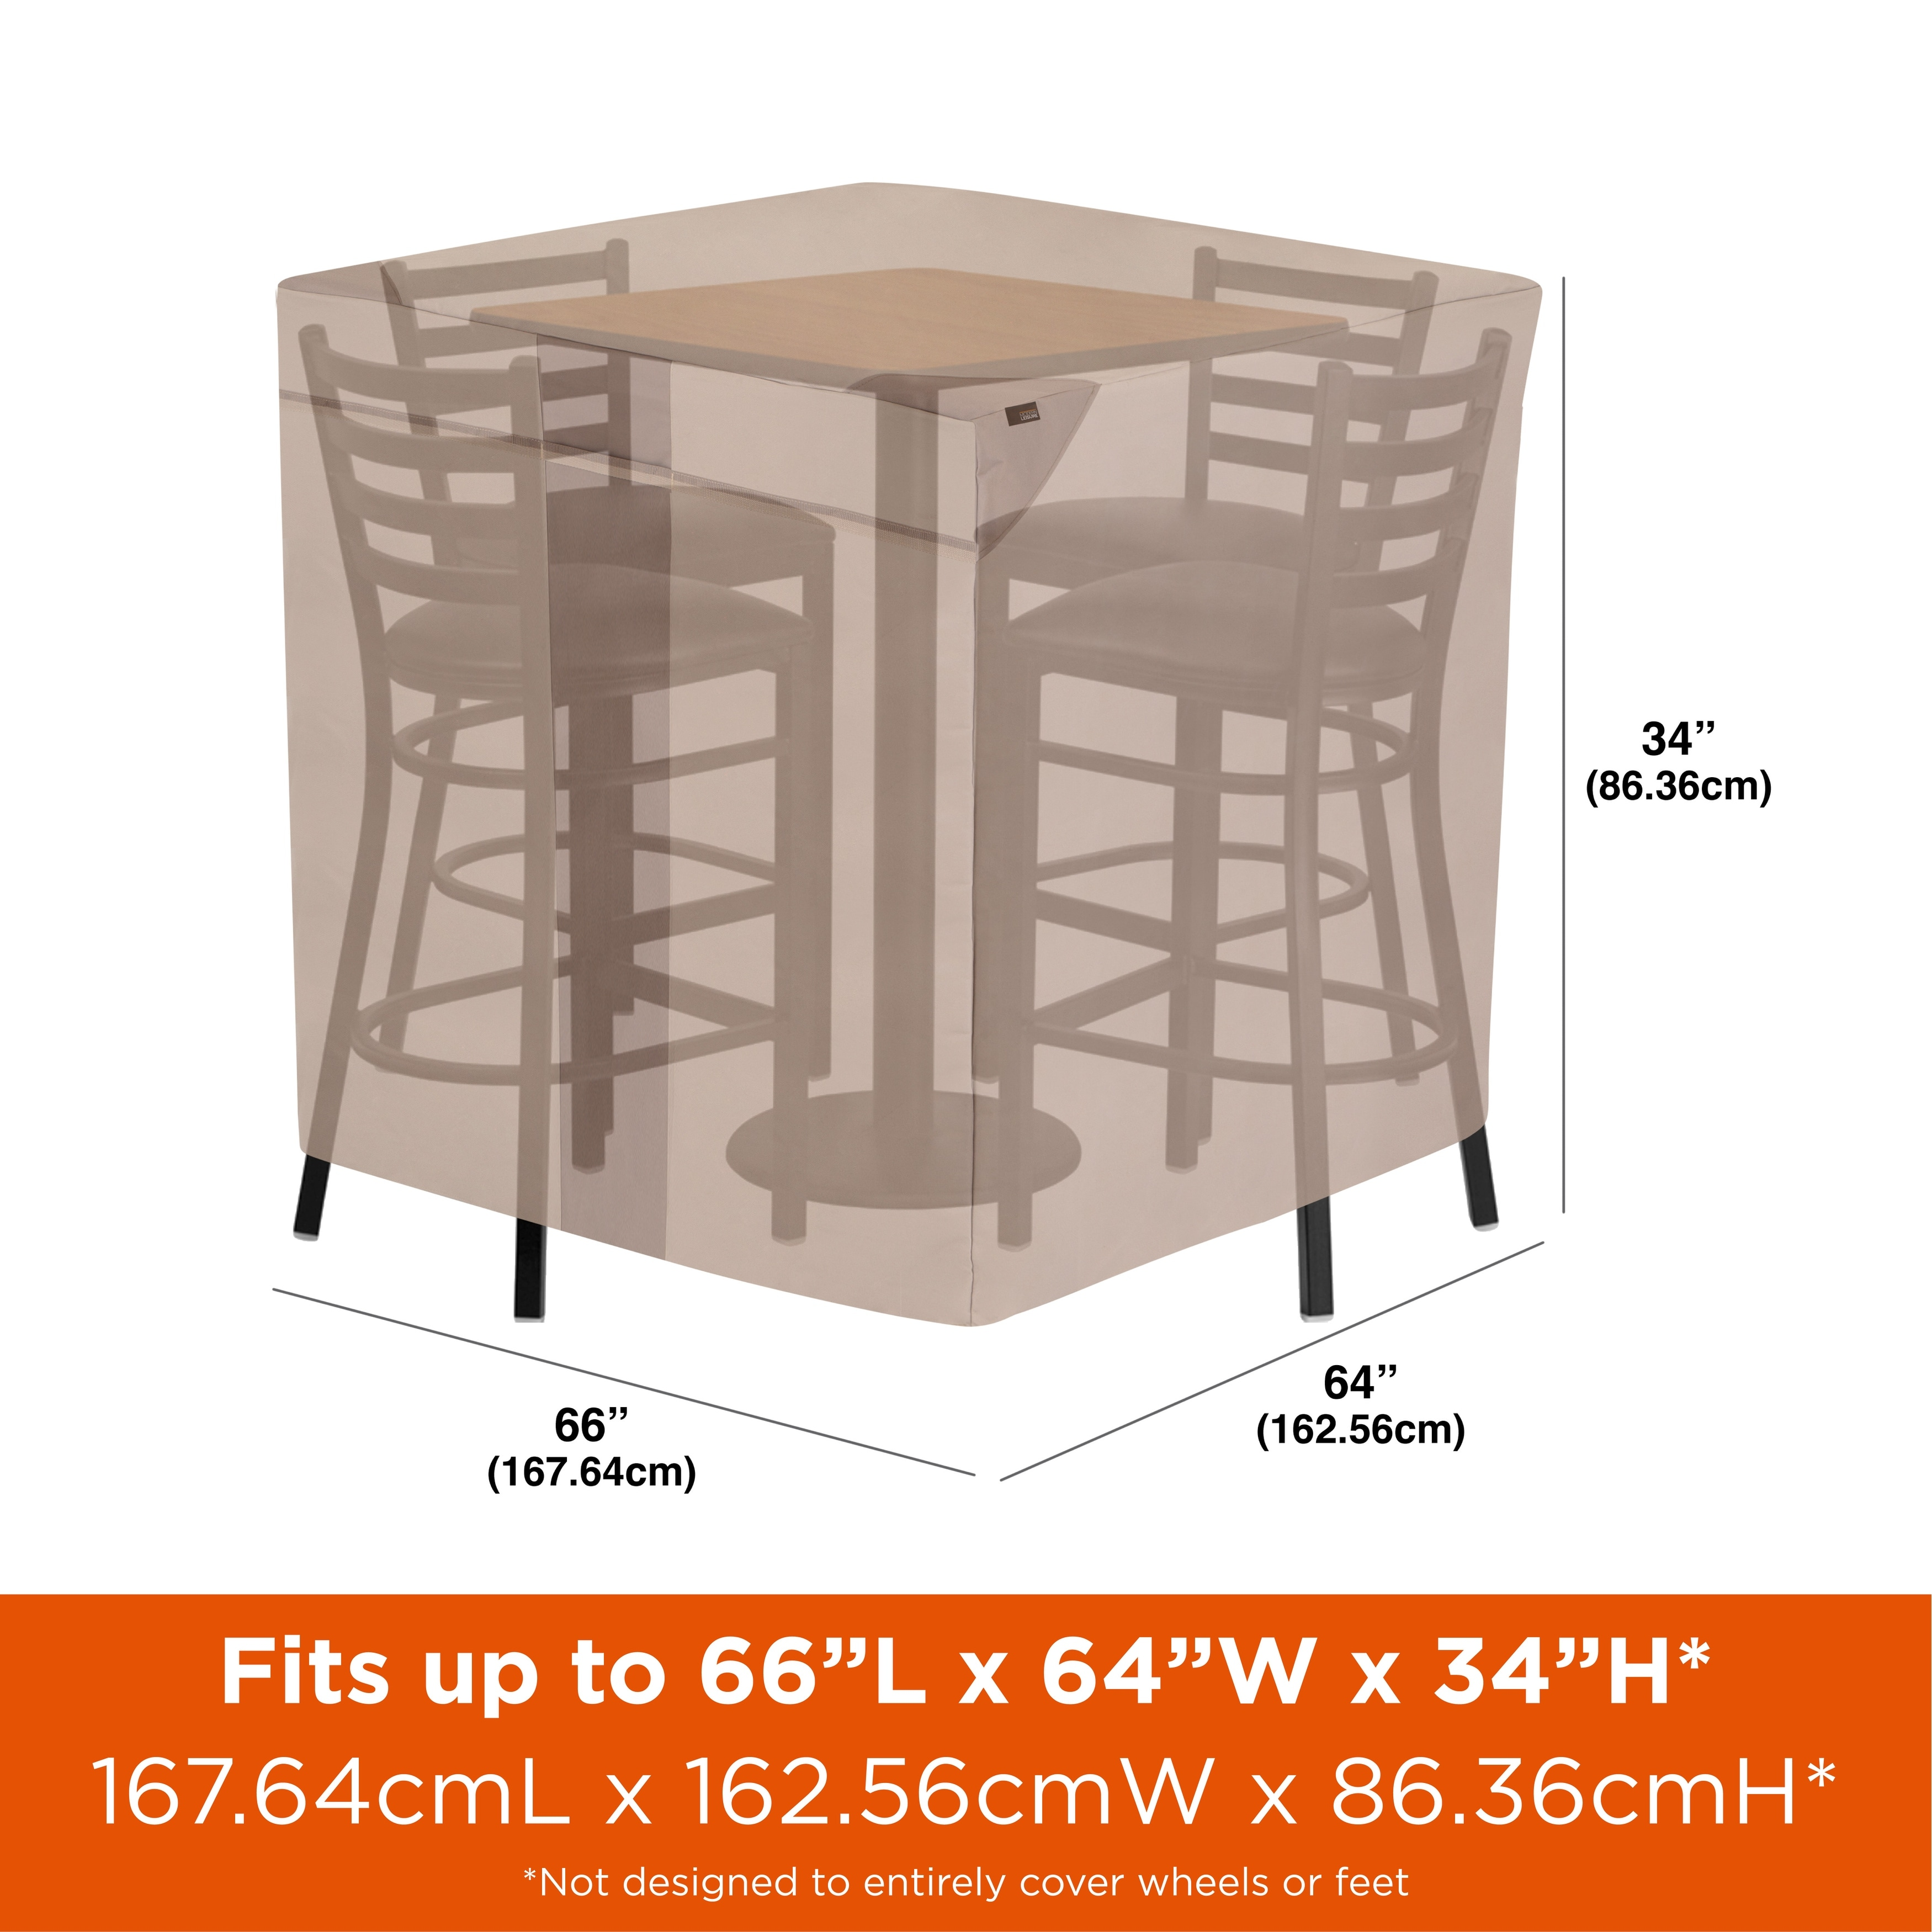 modern leisure monterey outdoor patio table chairs cover square bar height 64 d x 66 w x 34 h beige